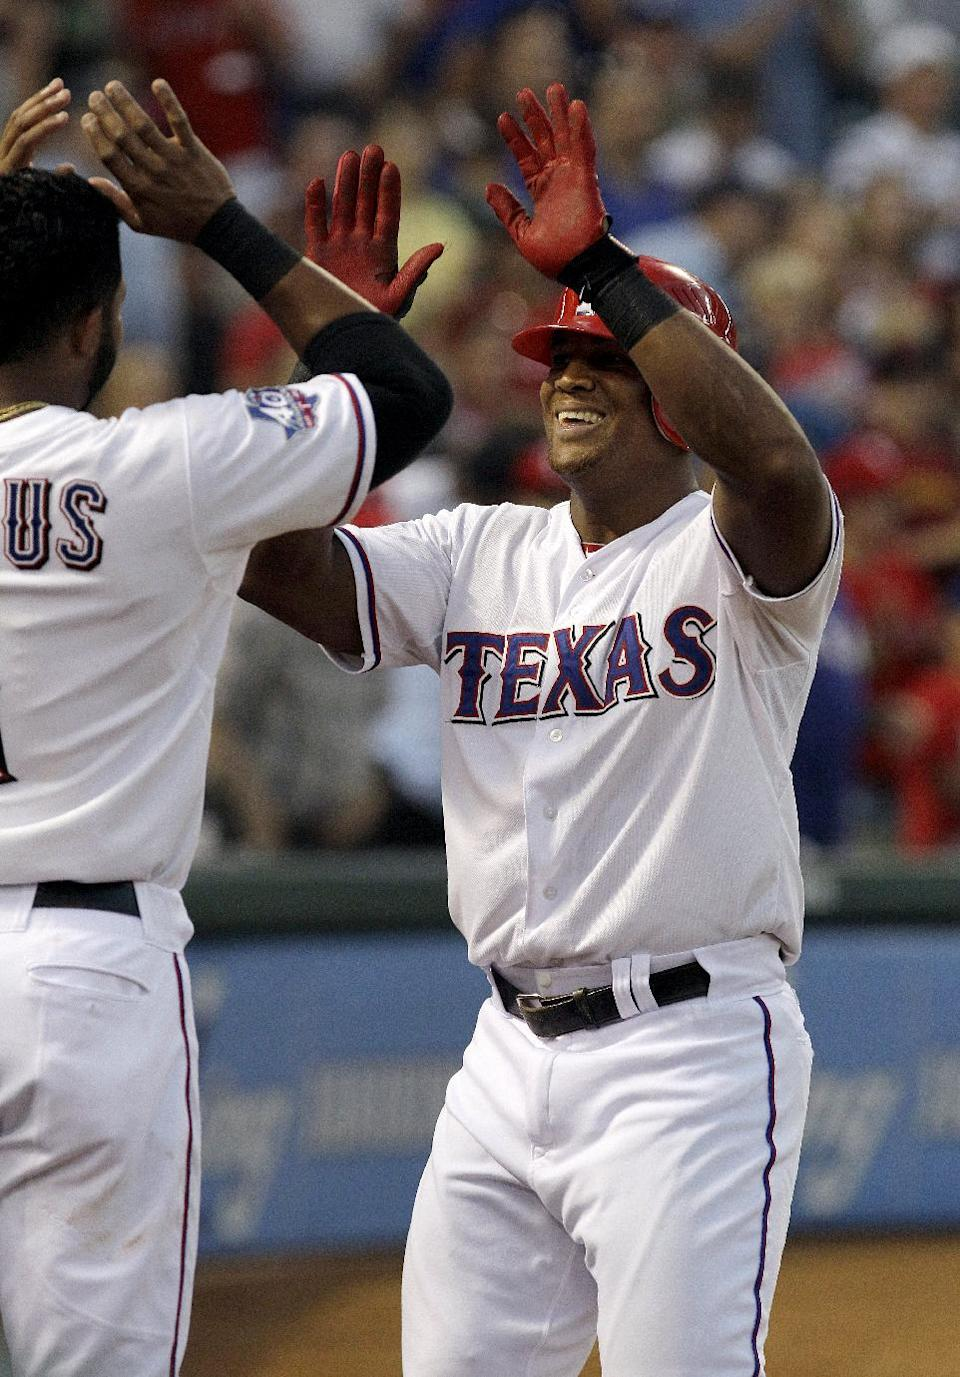 Texas Rangers' Adrian Beltre, right, celebrates with Elvis Andrus after Beltre's home run during the fourth inning of a baseball game against the Baltimore Orioles, Wednesday, Aug. 22, 2012, in Arlington, Texas. (AP Photo/LM Otero)